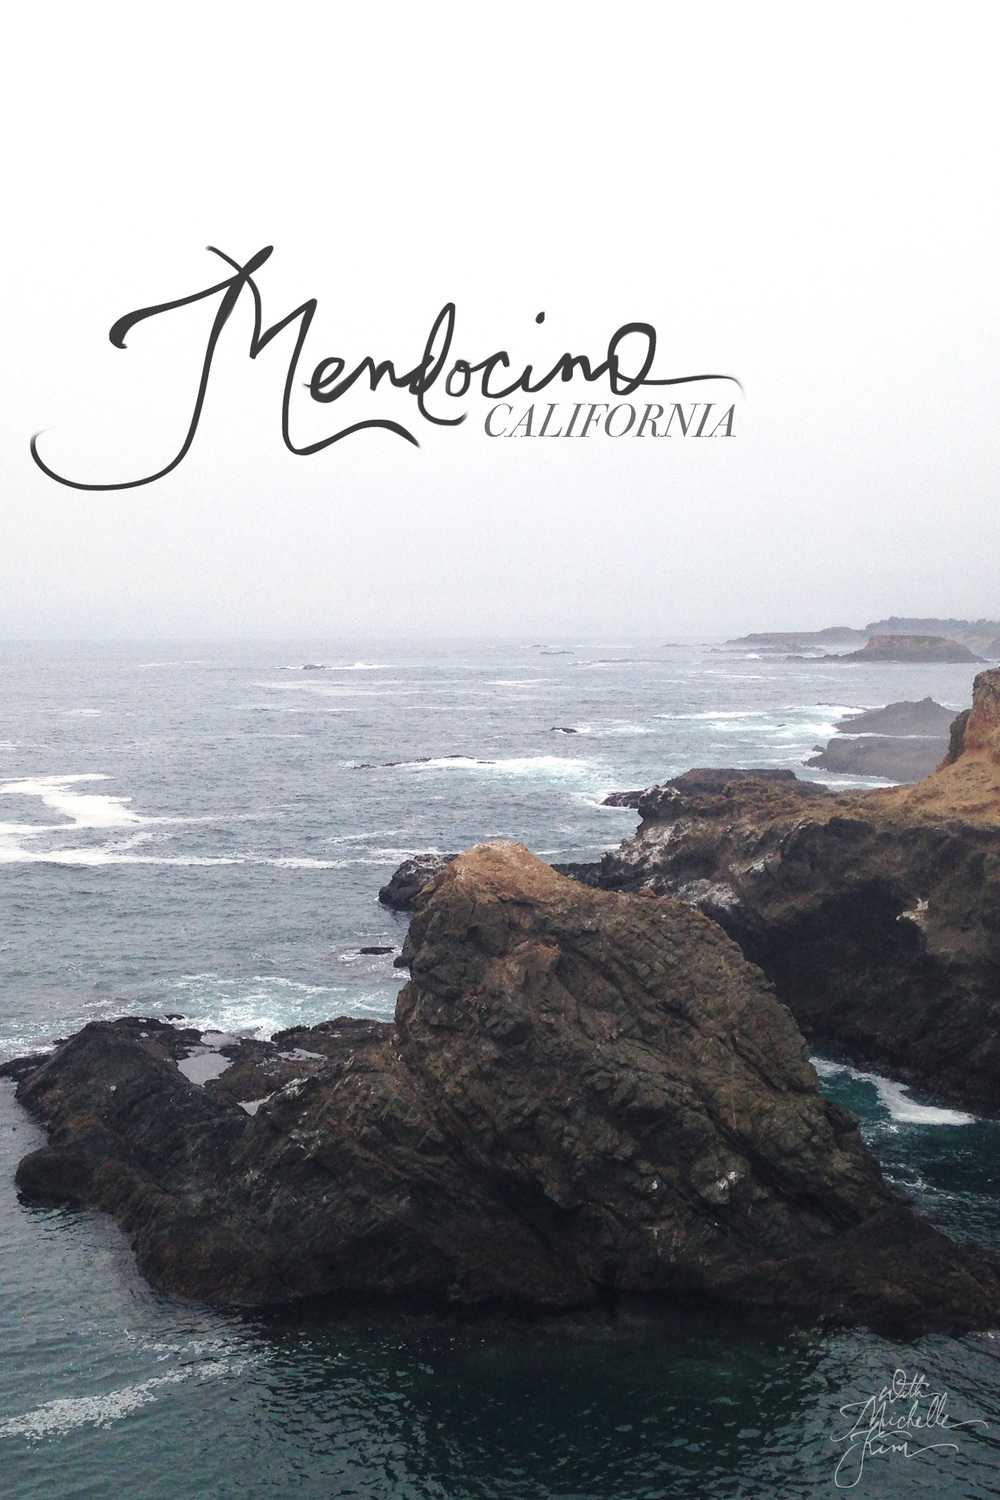 Travel Spotlight: Mendocino, CA (withmichellekim.com)